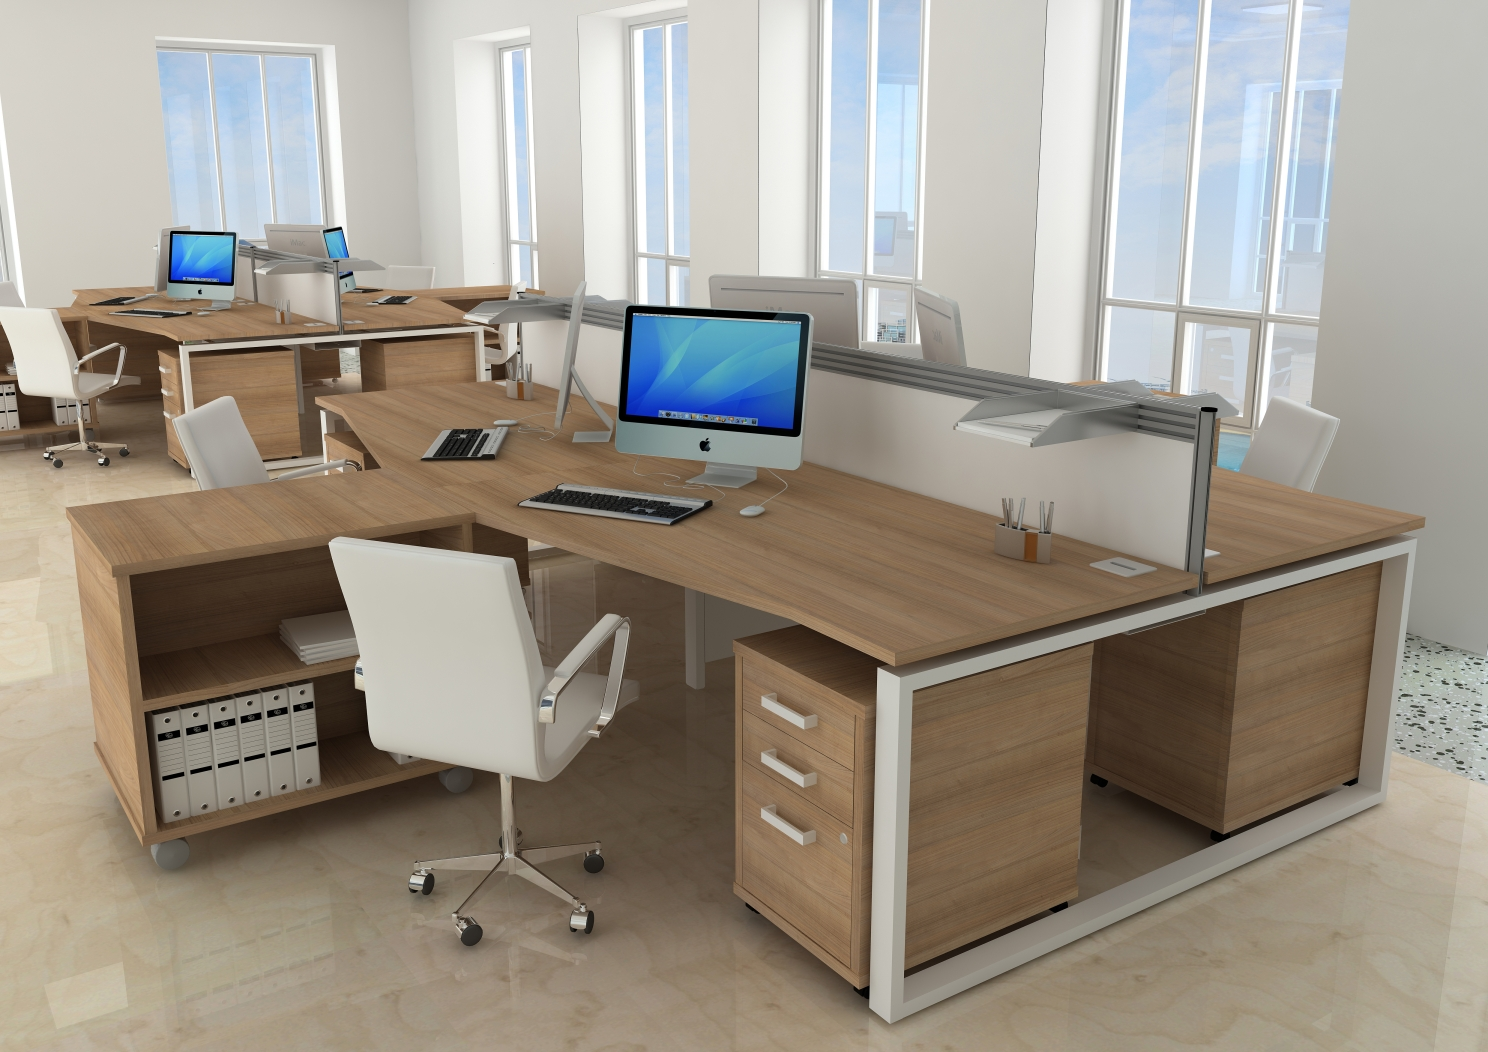 budget office interiors. Furniture And Office Interiors Budget